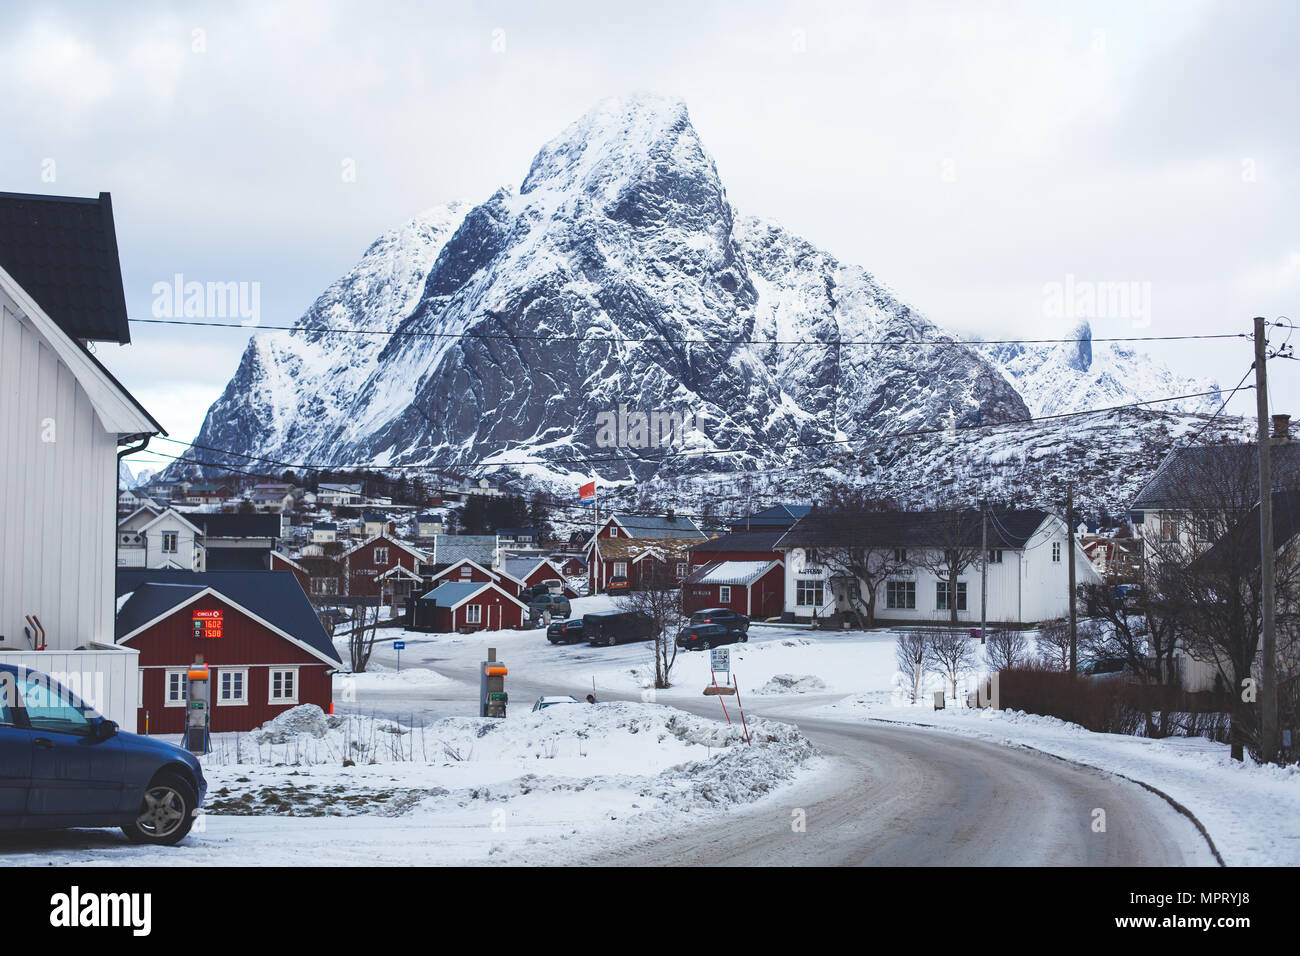 Beautiful super wide-angle winter snowy view of Reine, Norway, Lofoten Islands, with skyline, mountains, famous fishing village with red fishing cabin - Stock Image